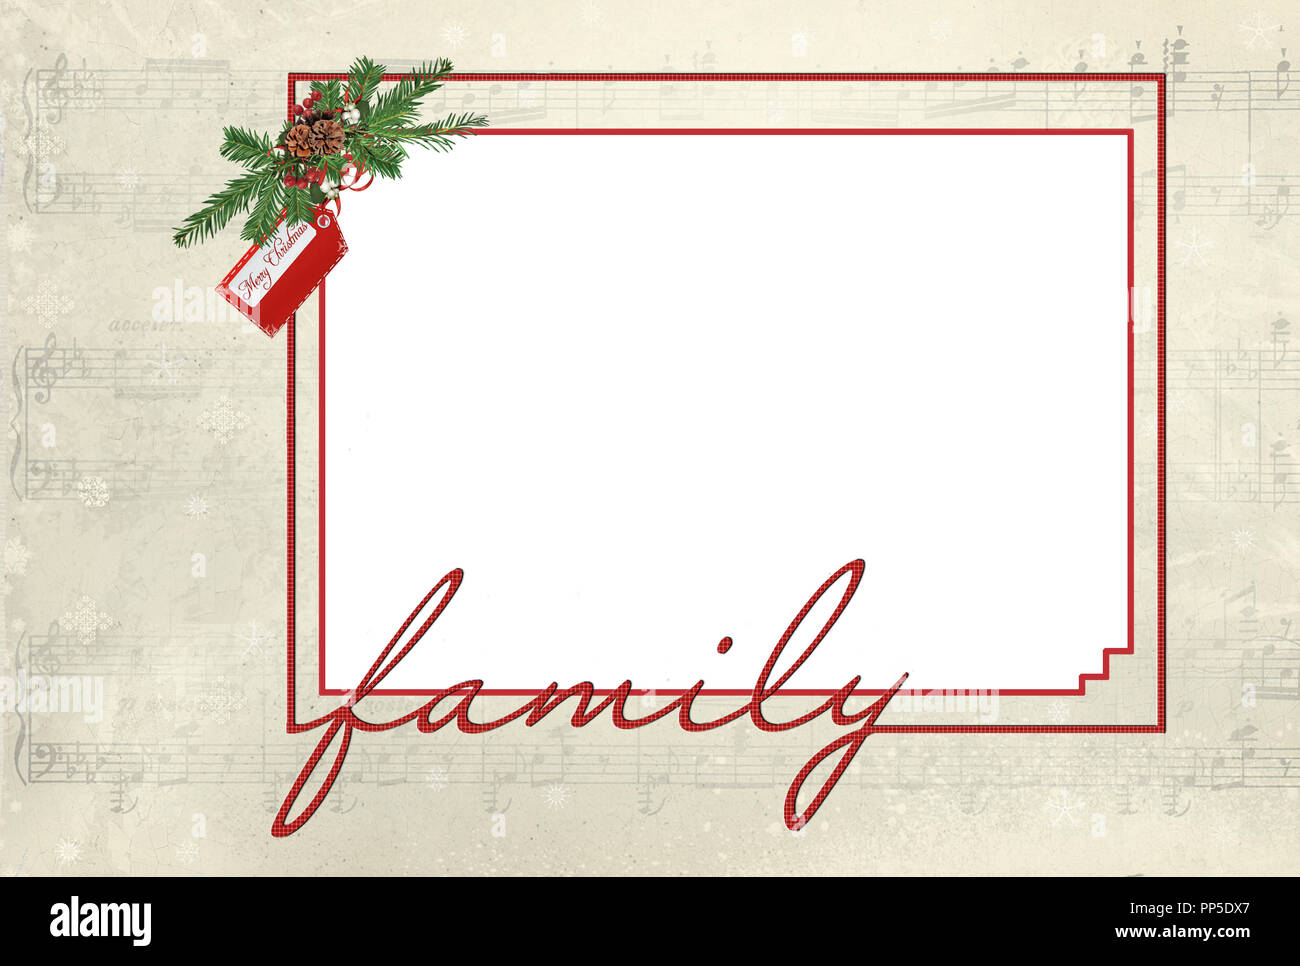 red frame with family script font text and Christmas pine